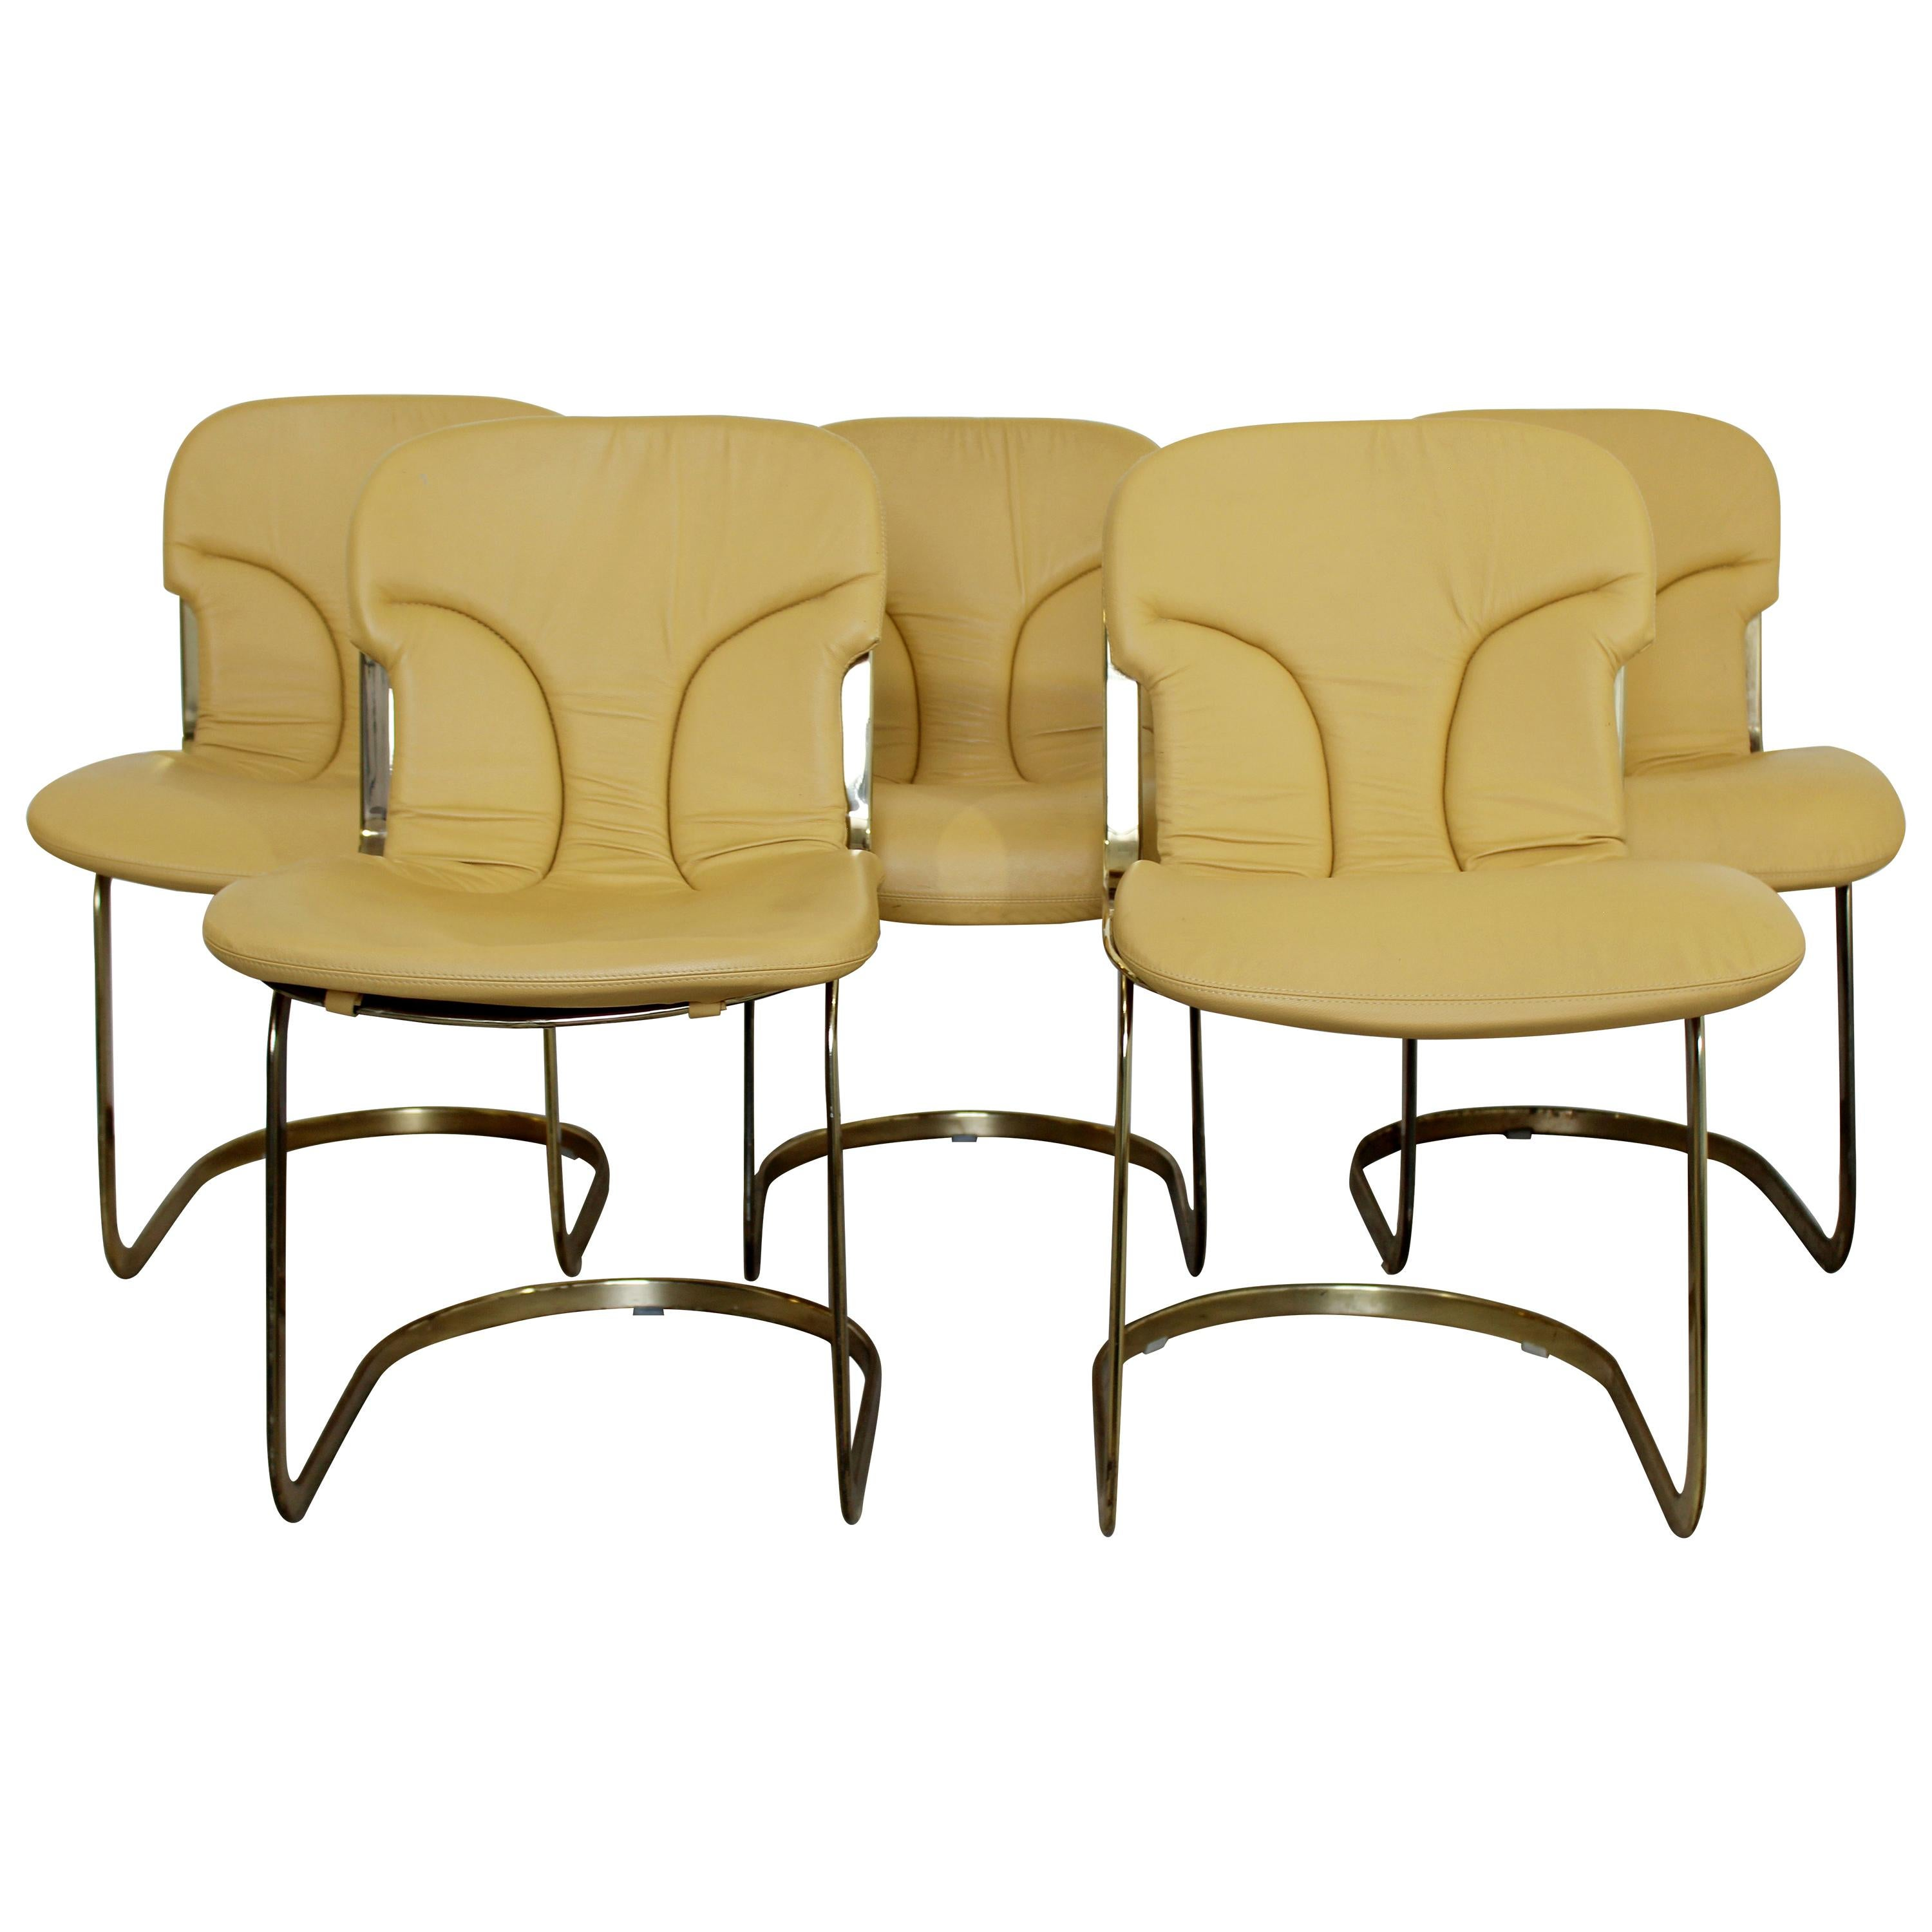 Mid-Century Modern Willy Rizzo for Cidue Set of 5 Brass Side Dining Chairs 1970s